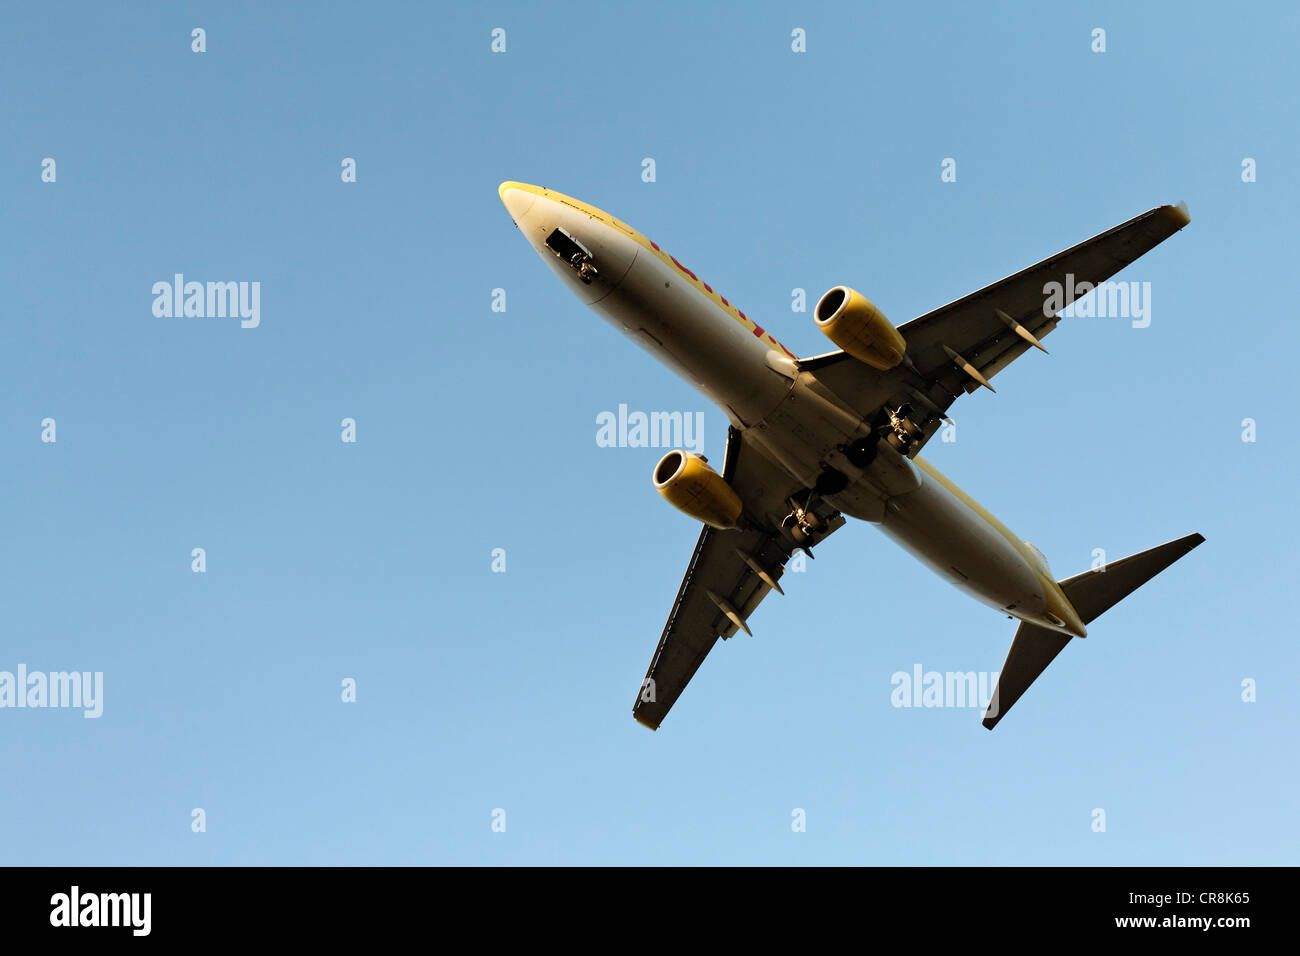 Boeing 737 in its final descent, with landing gear extended - Stock Image